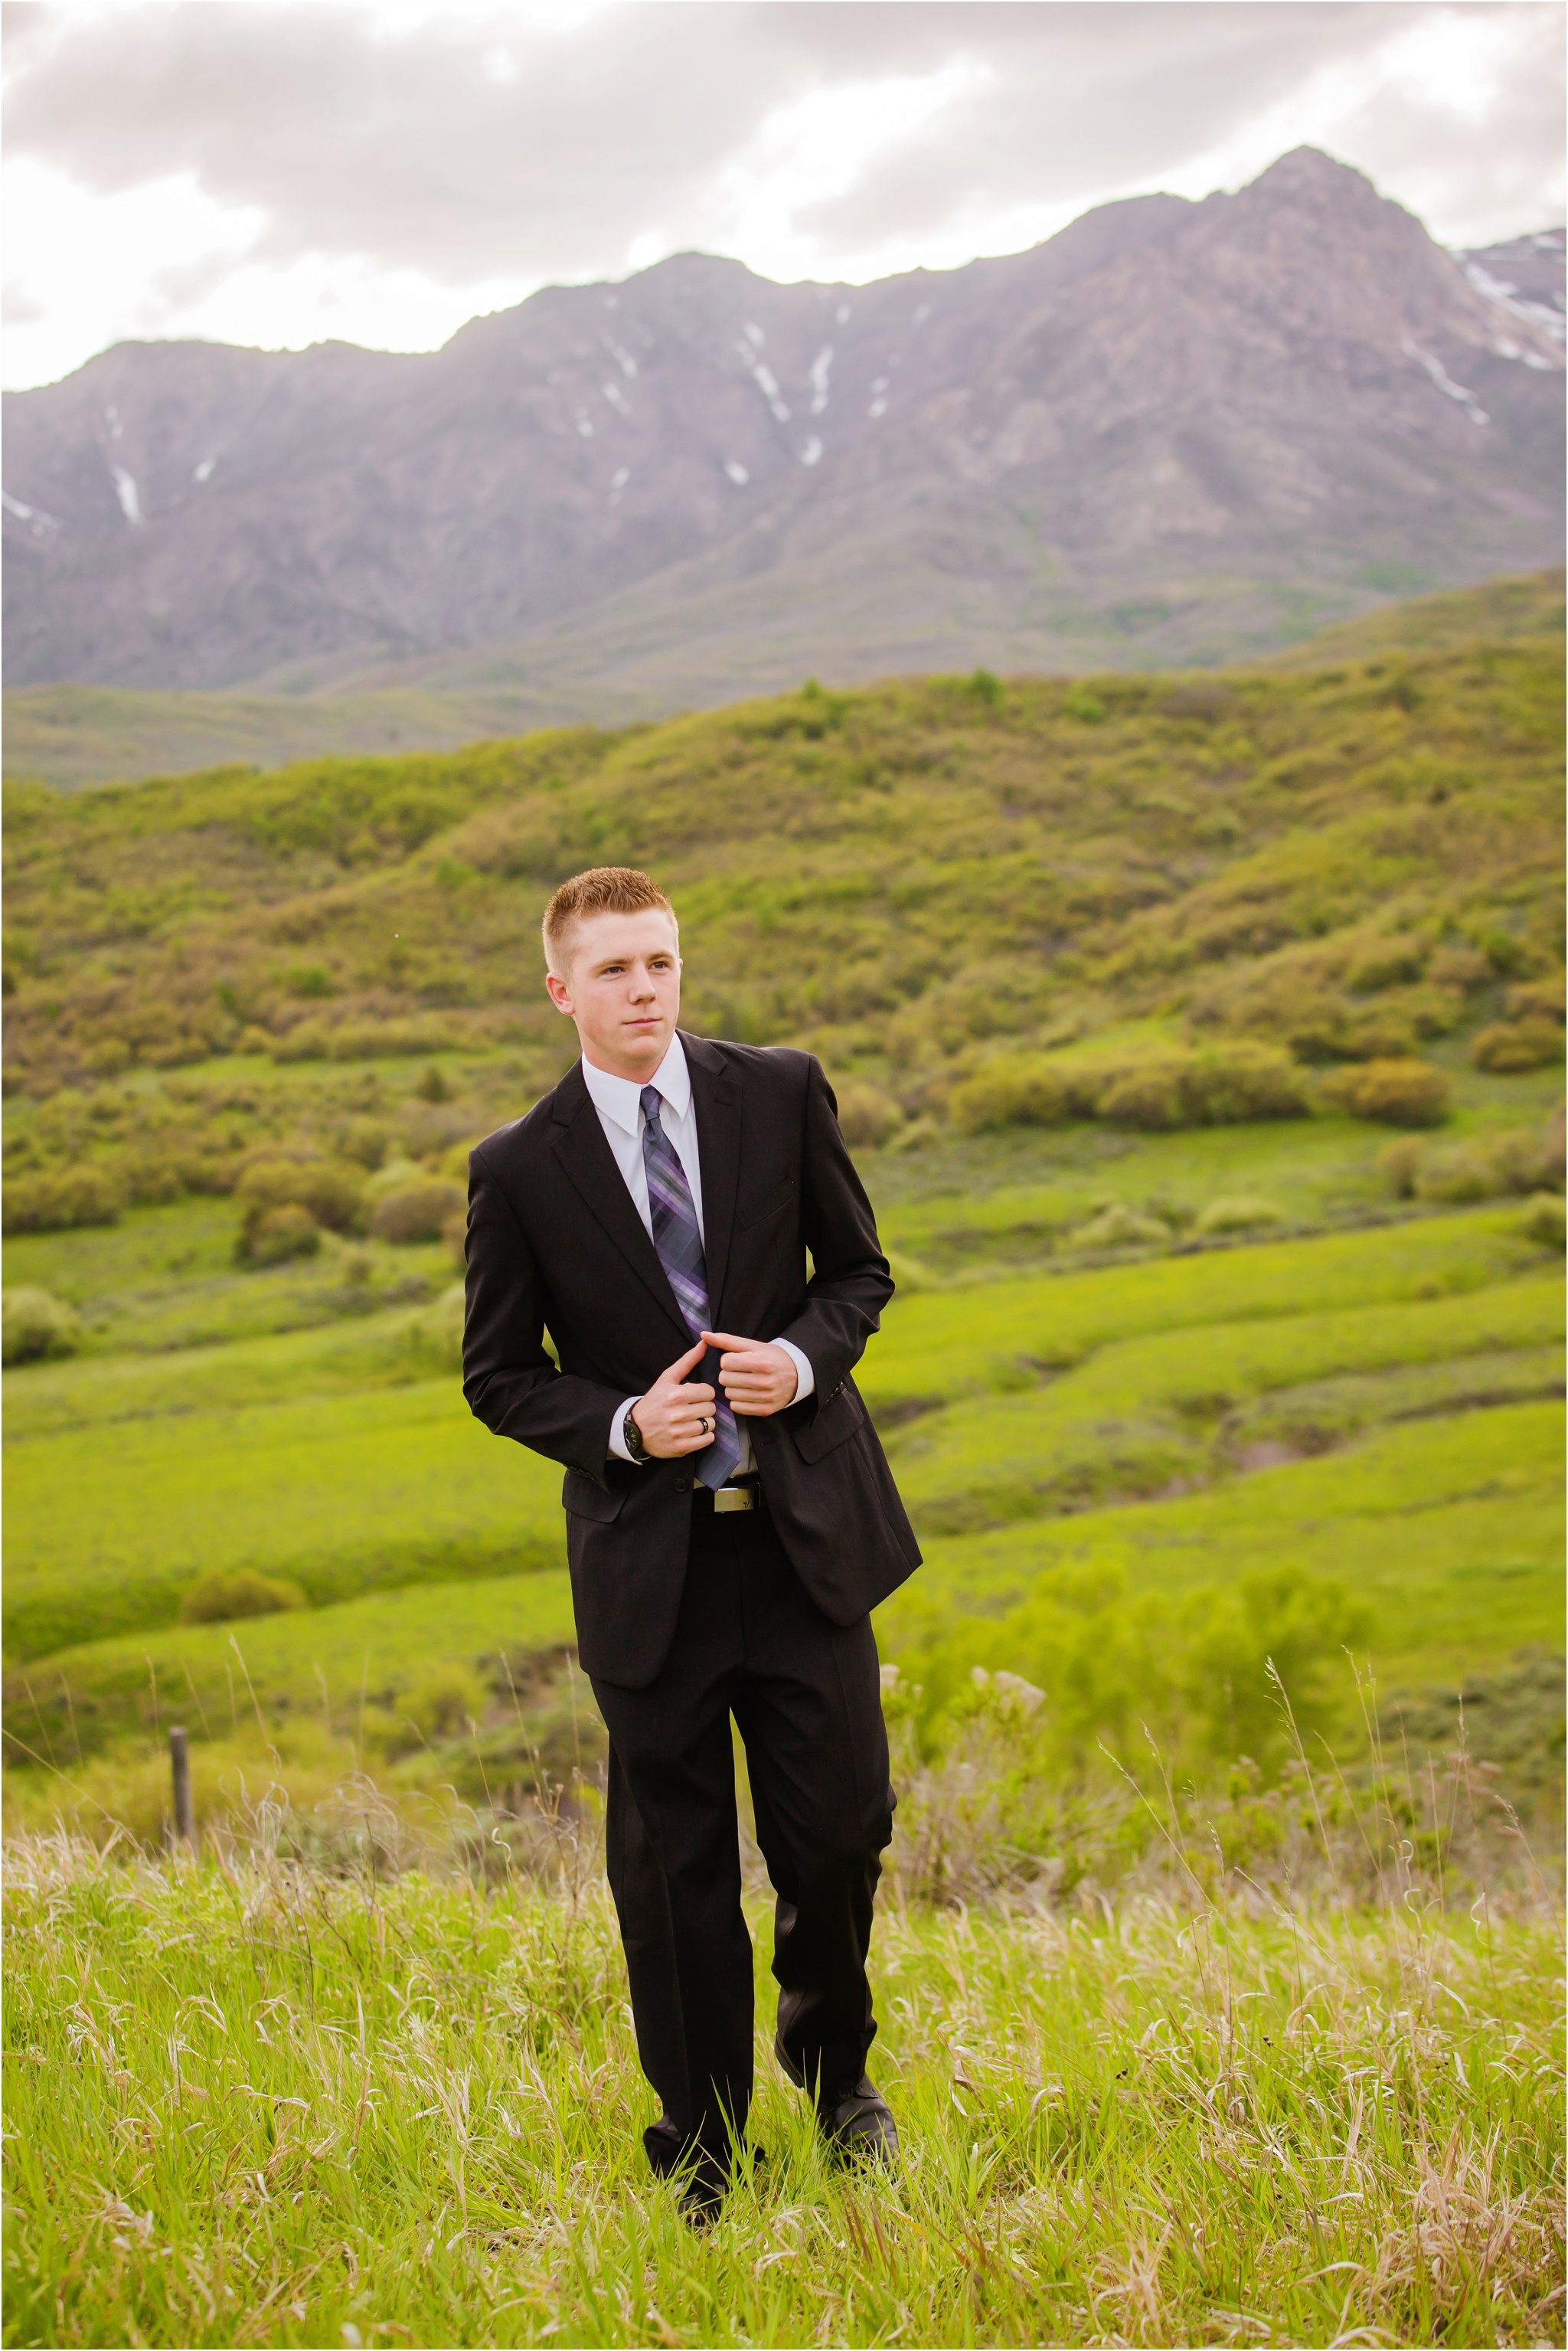 Utah Mountains LDS Missionary Terra Cooper Photography_2229.jpg